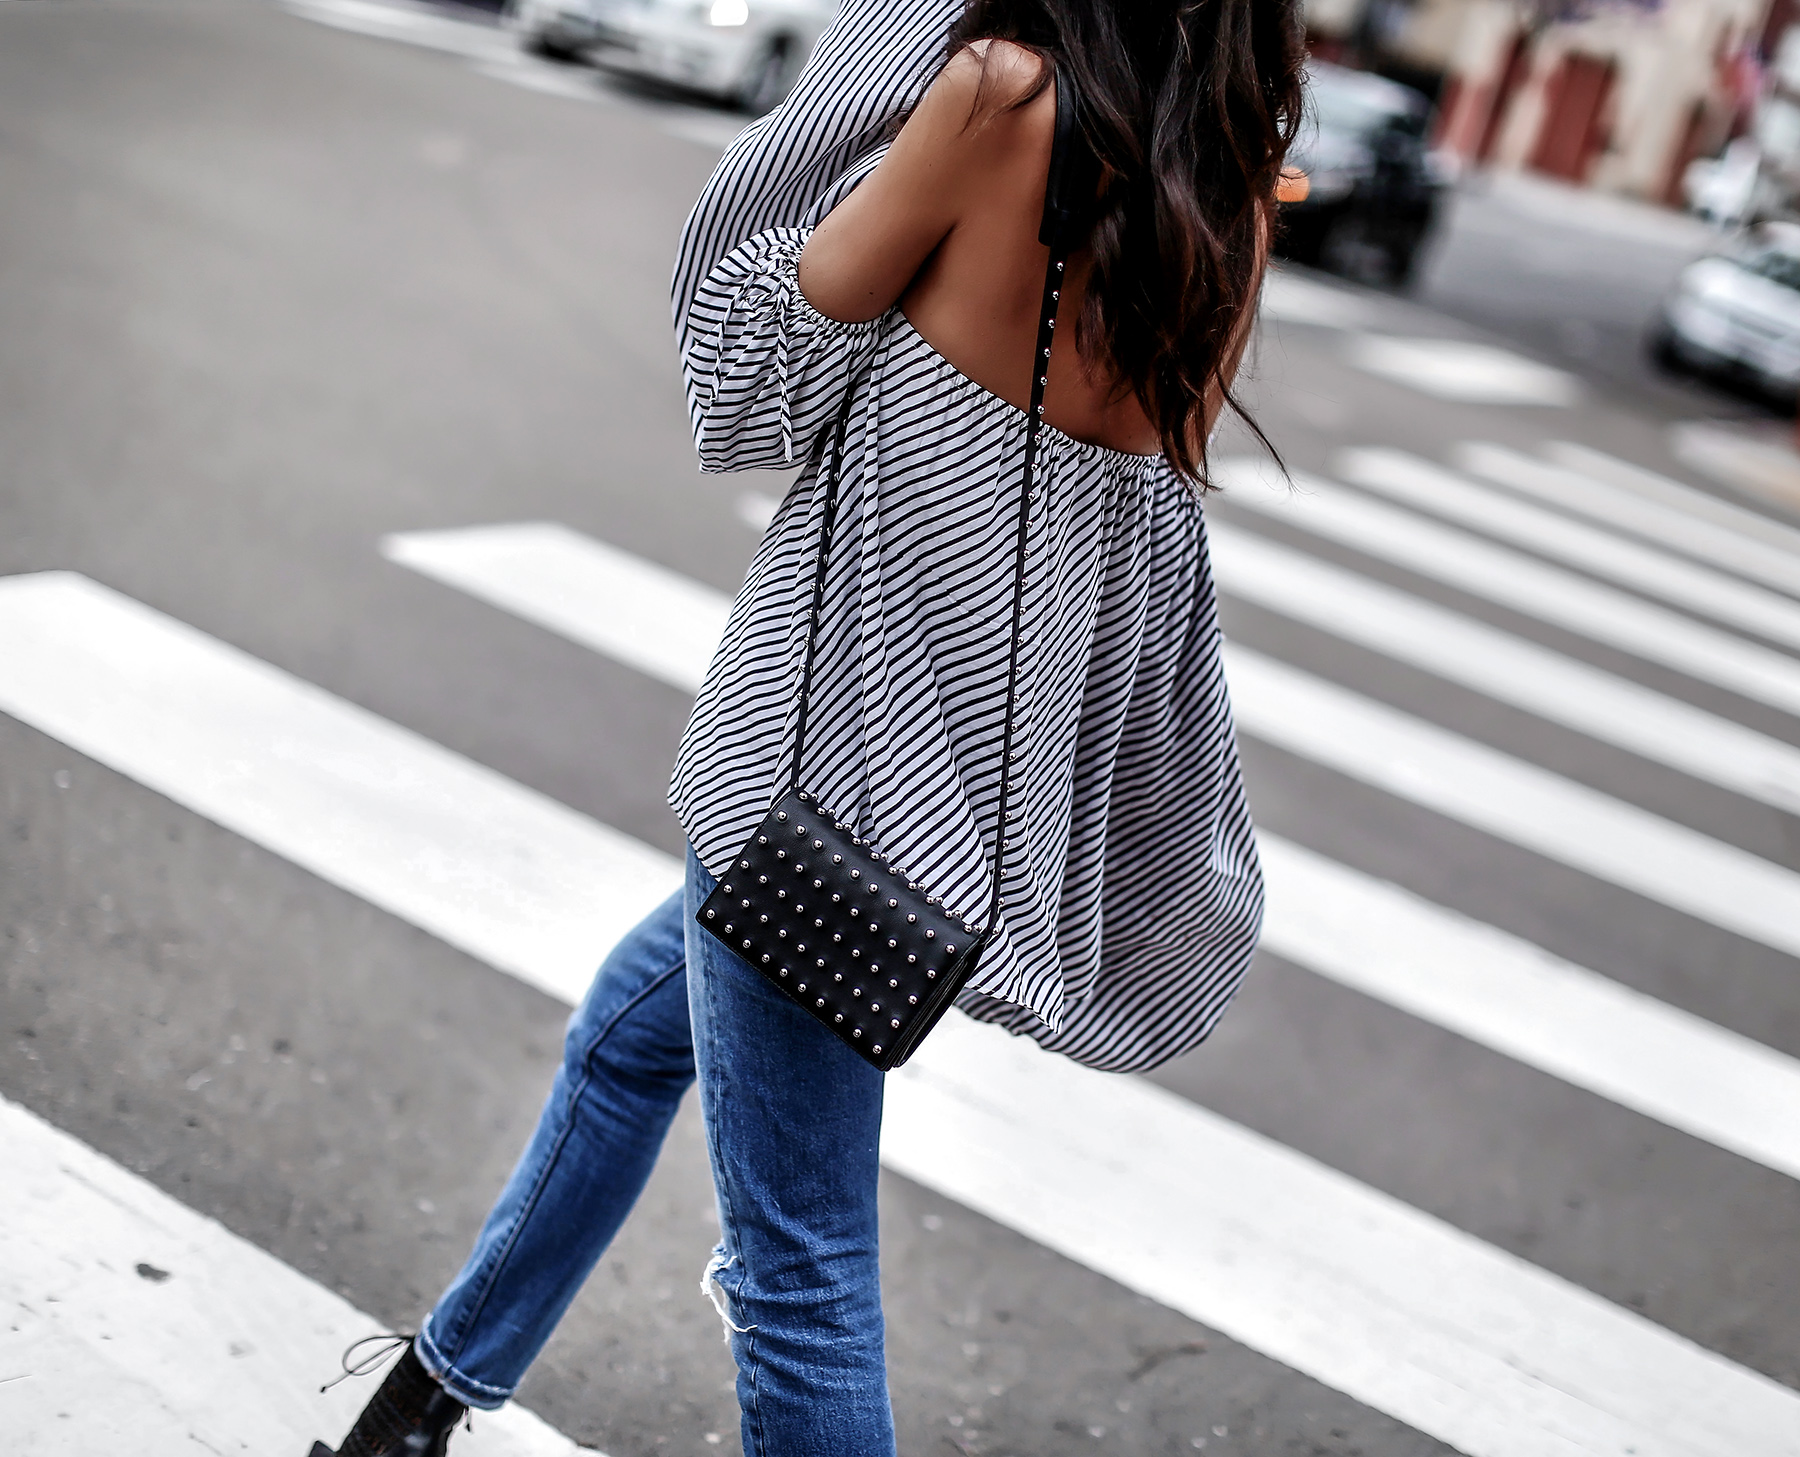 High_Rise_Distressed_Levis_Jeans_MLM_Striped_Off_The_Shoulder_Top_Alexander_Wang_Studded_Bag.jpg